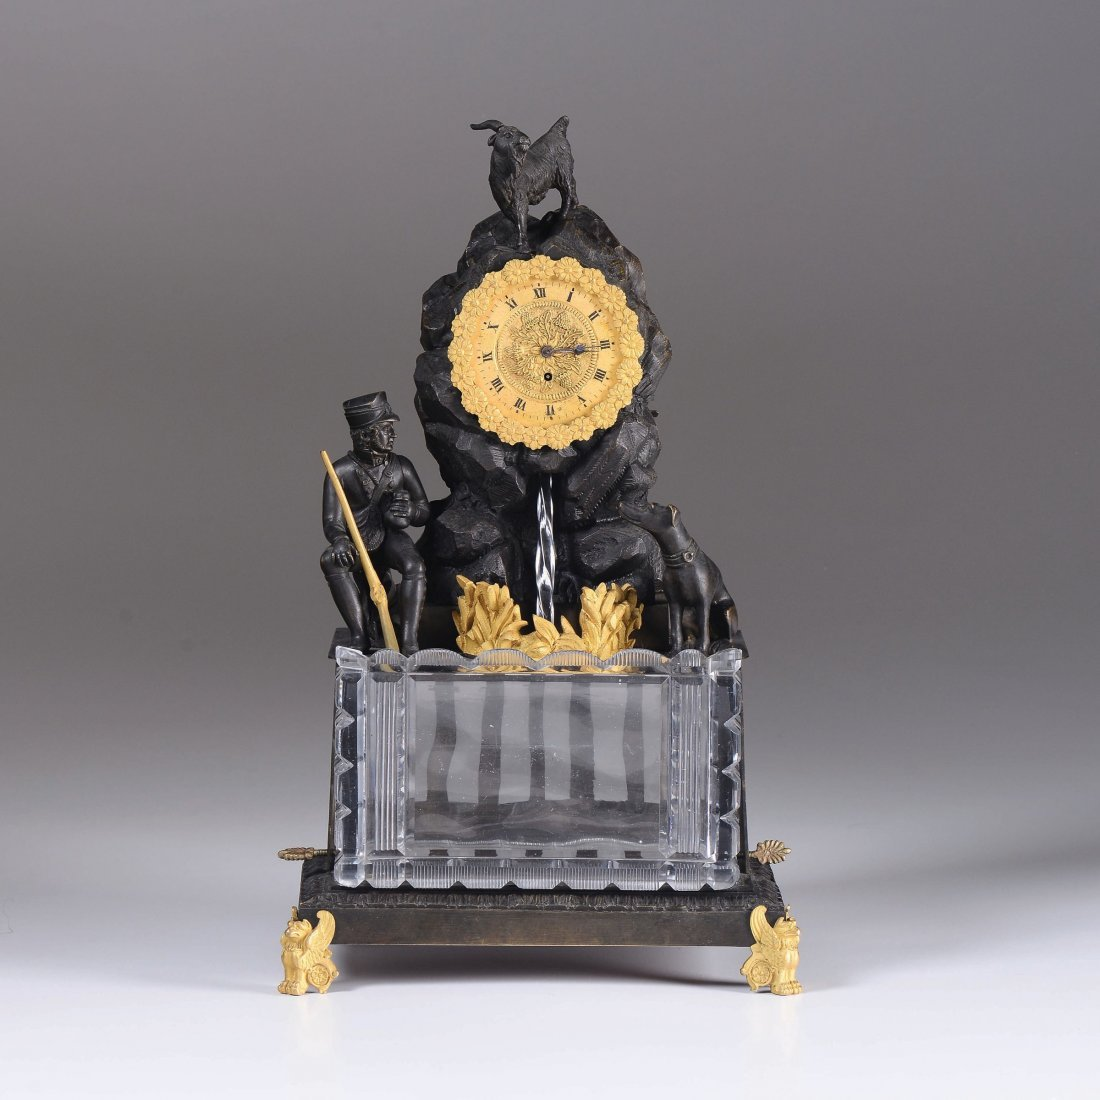 A Charles X table clock with fountian, 19th century